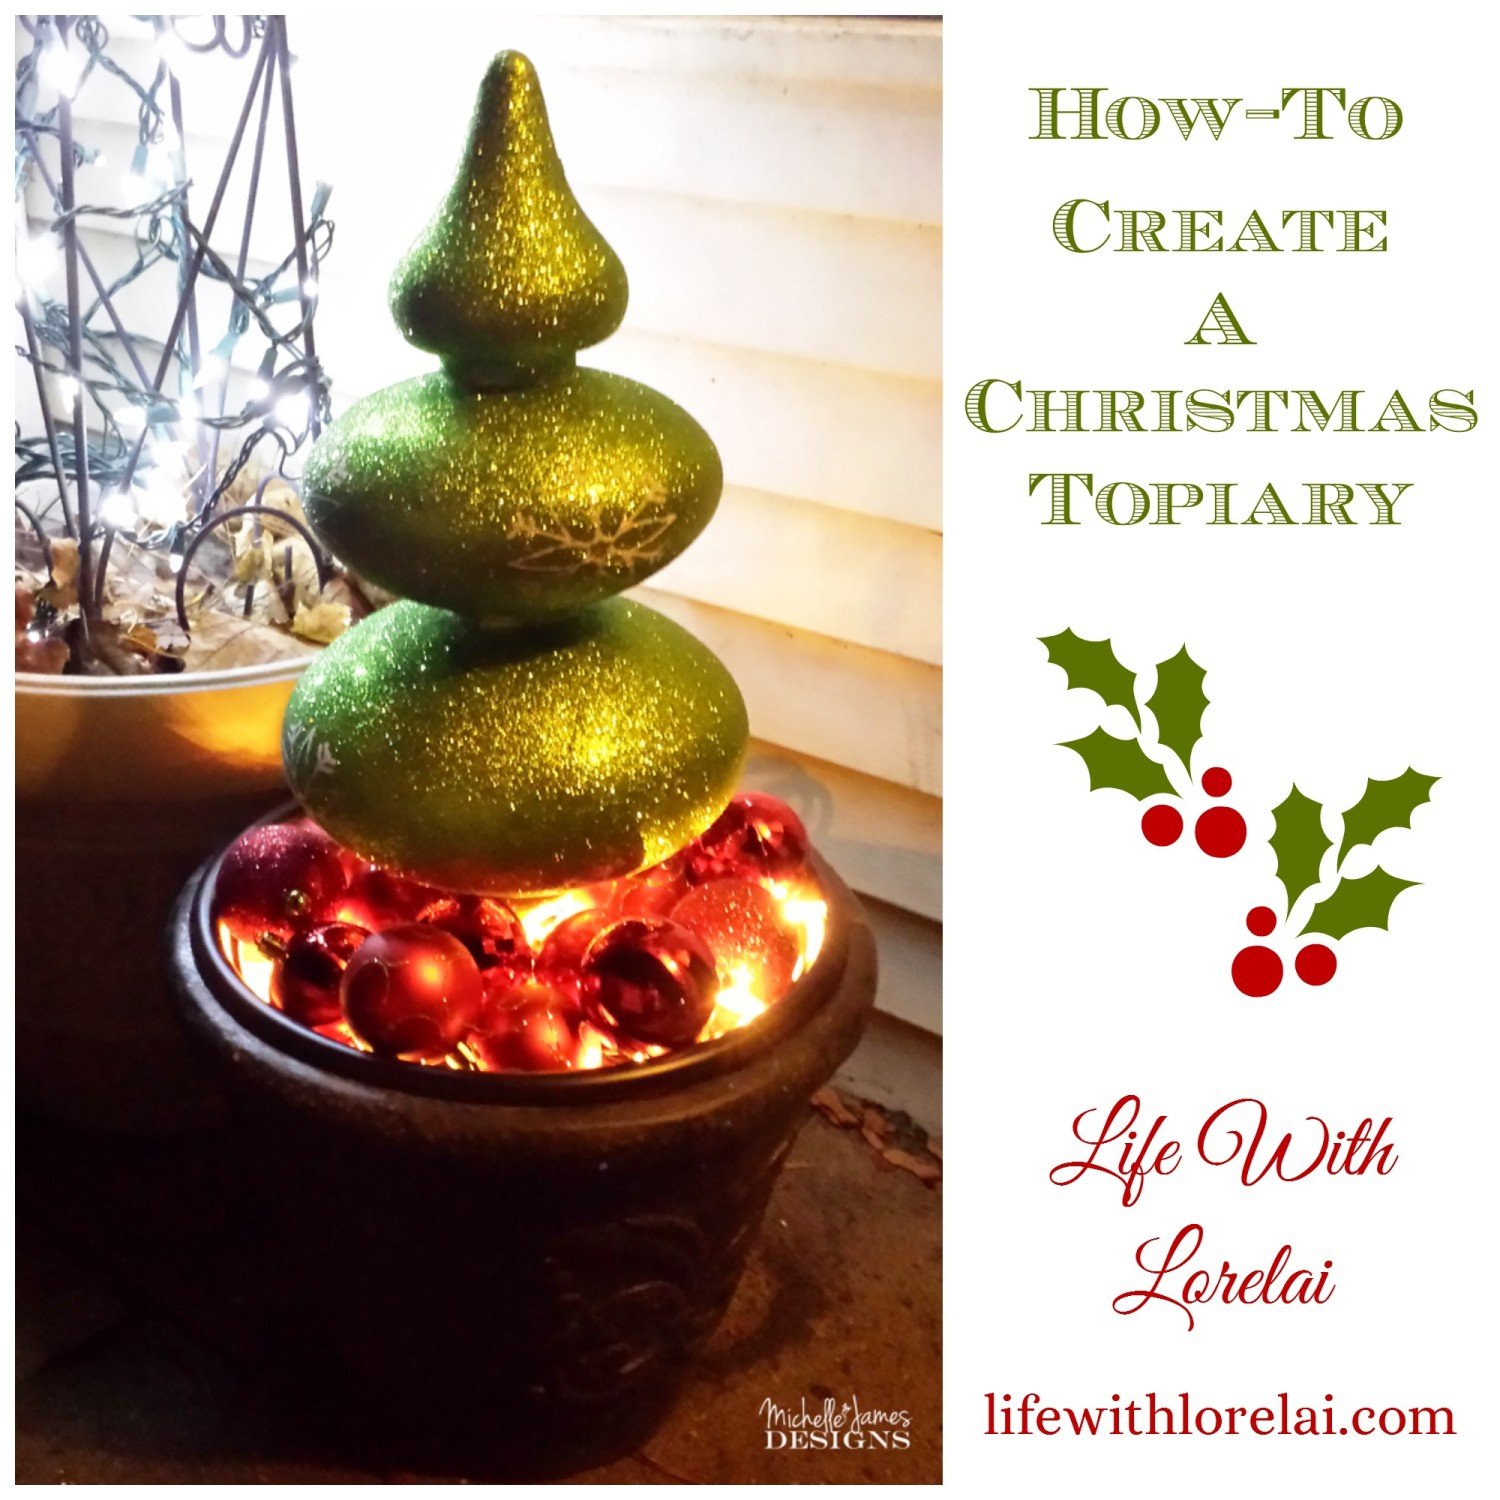 Christmas Topiary Decor.How To Create A Christmas Topiary Life With Lorelai